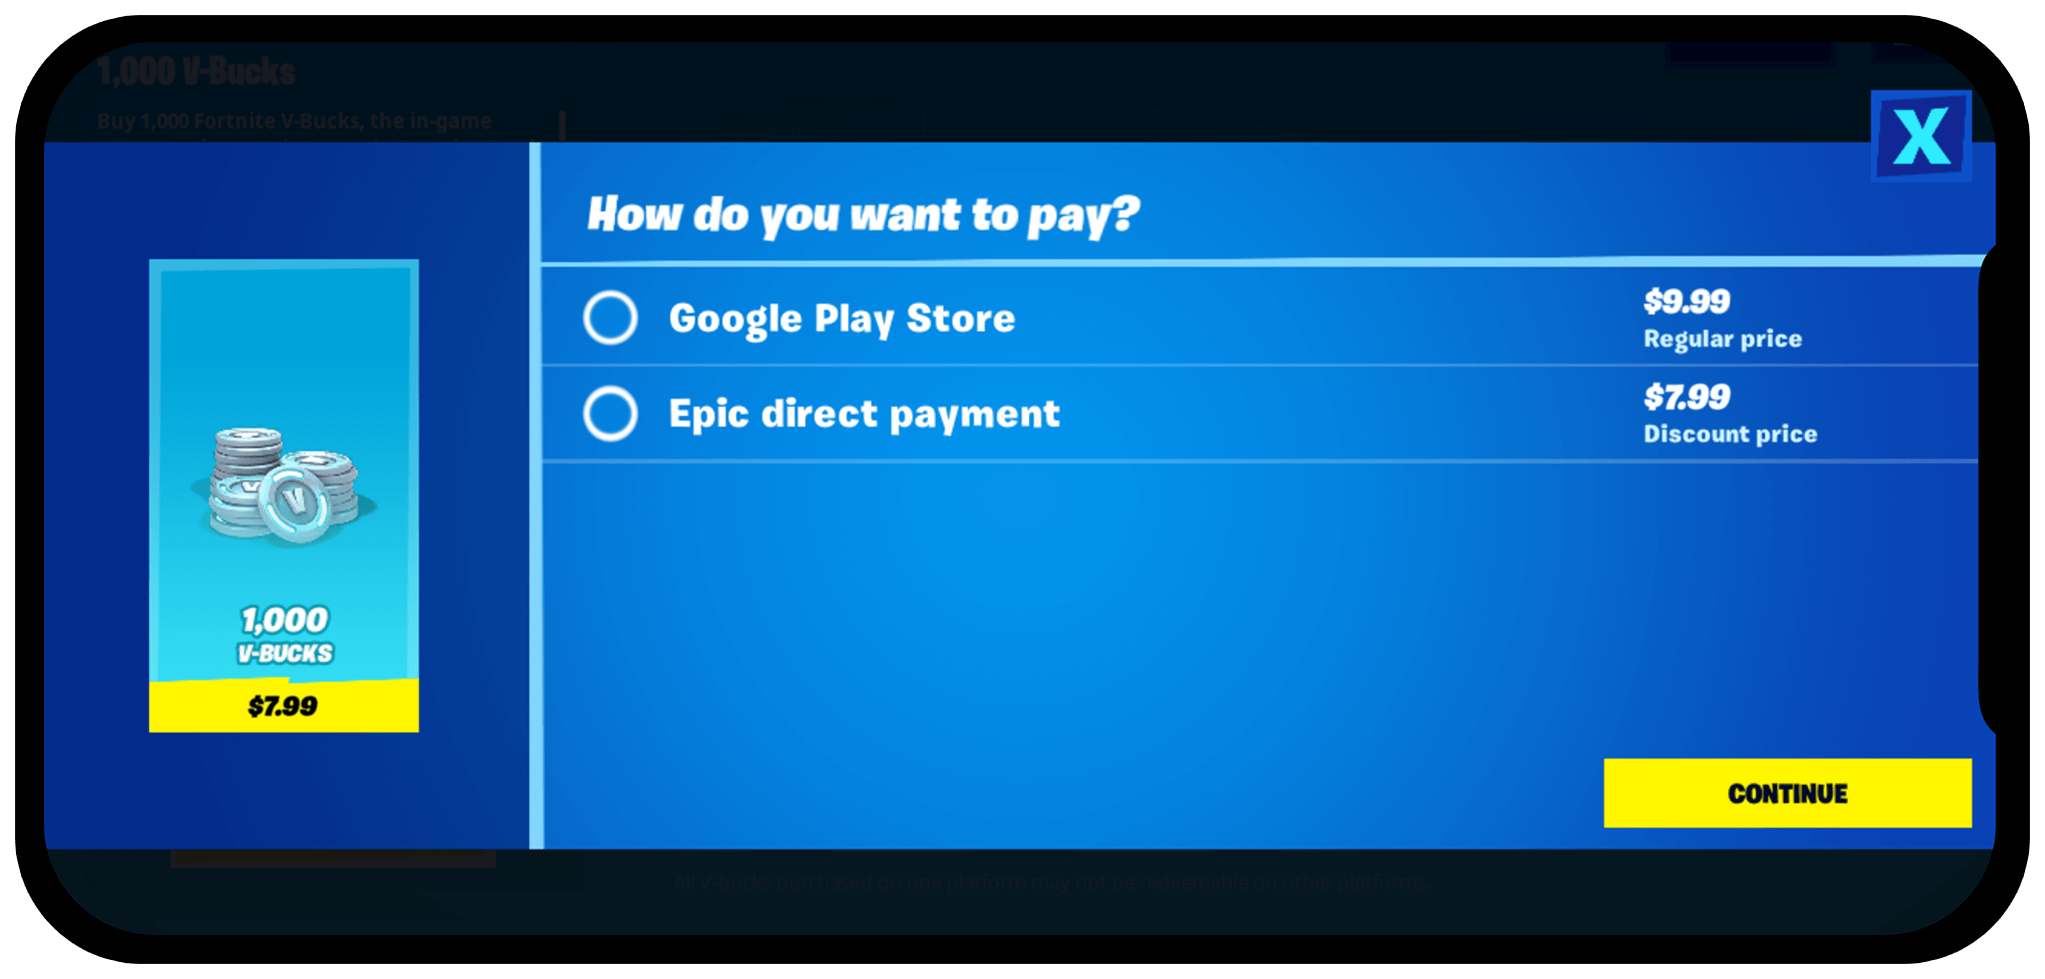 Epic direct pay on Google Play Store